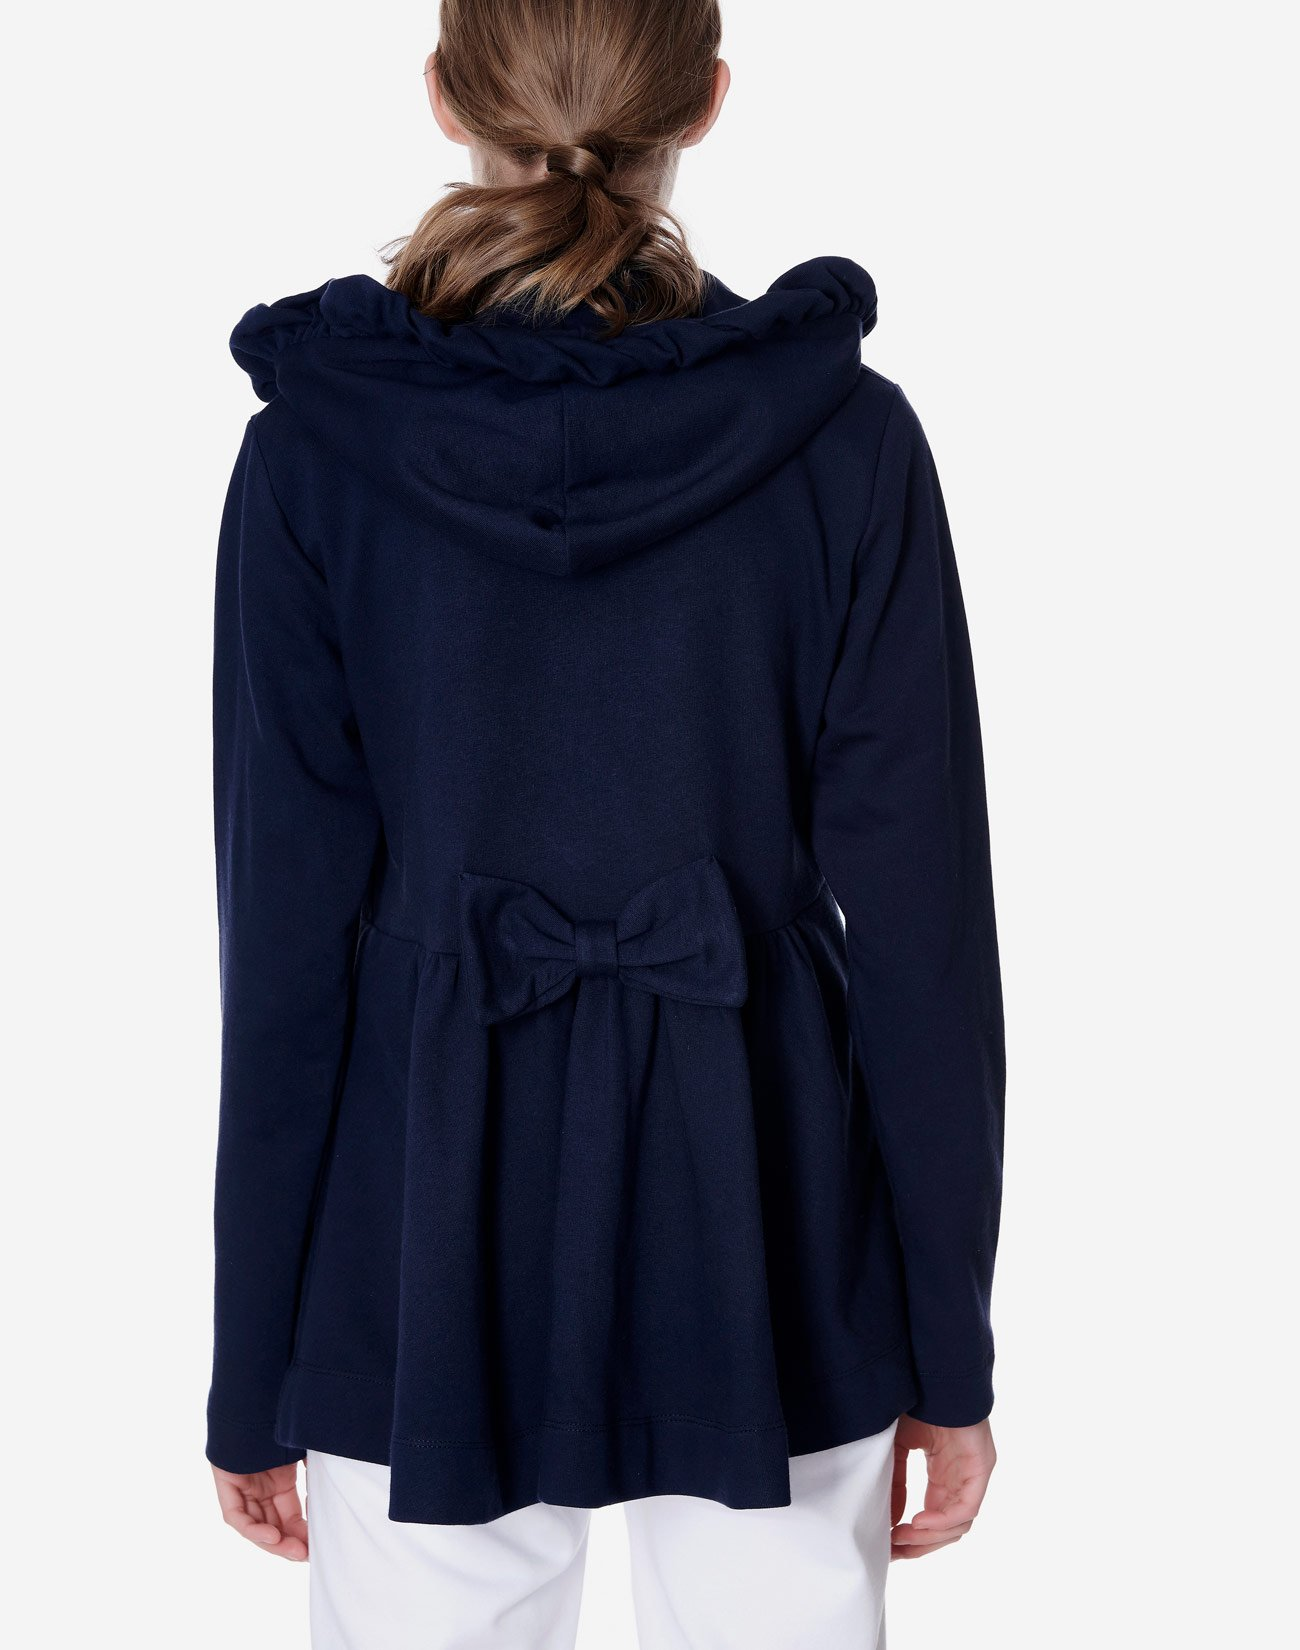 Hoodie with bow